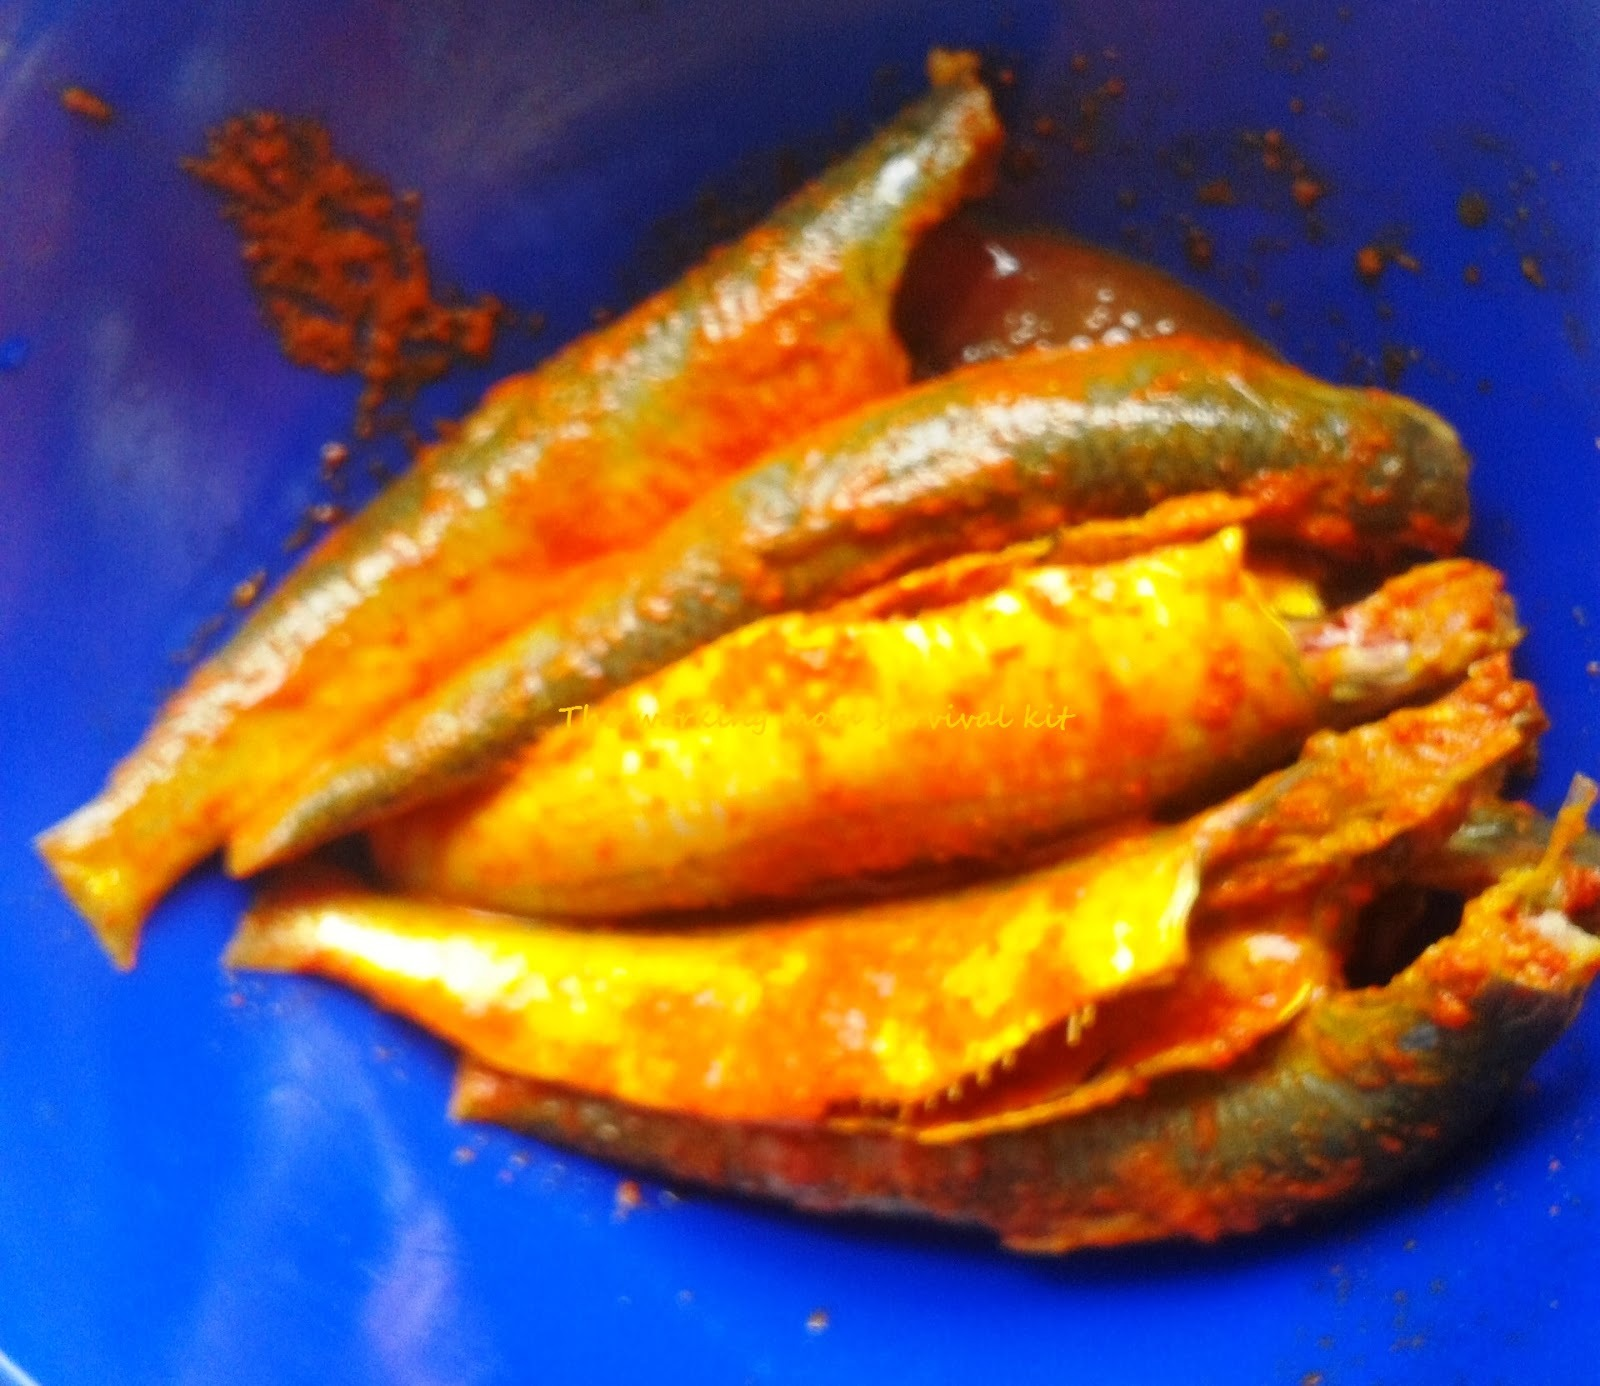 Kerala Recipe - Fish curry with coconut / mathi curry Kannur style